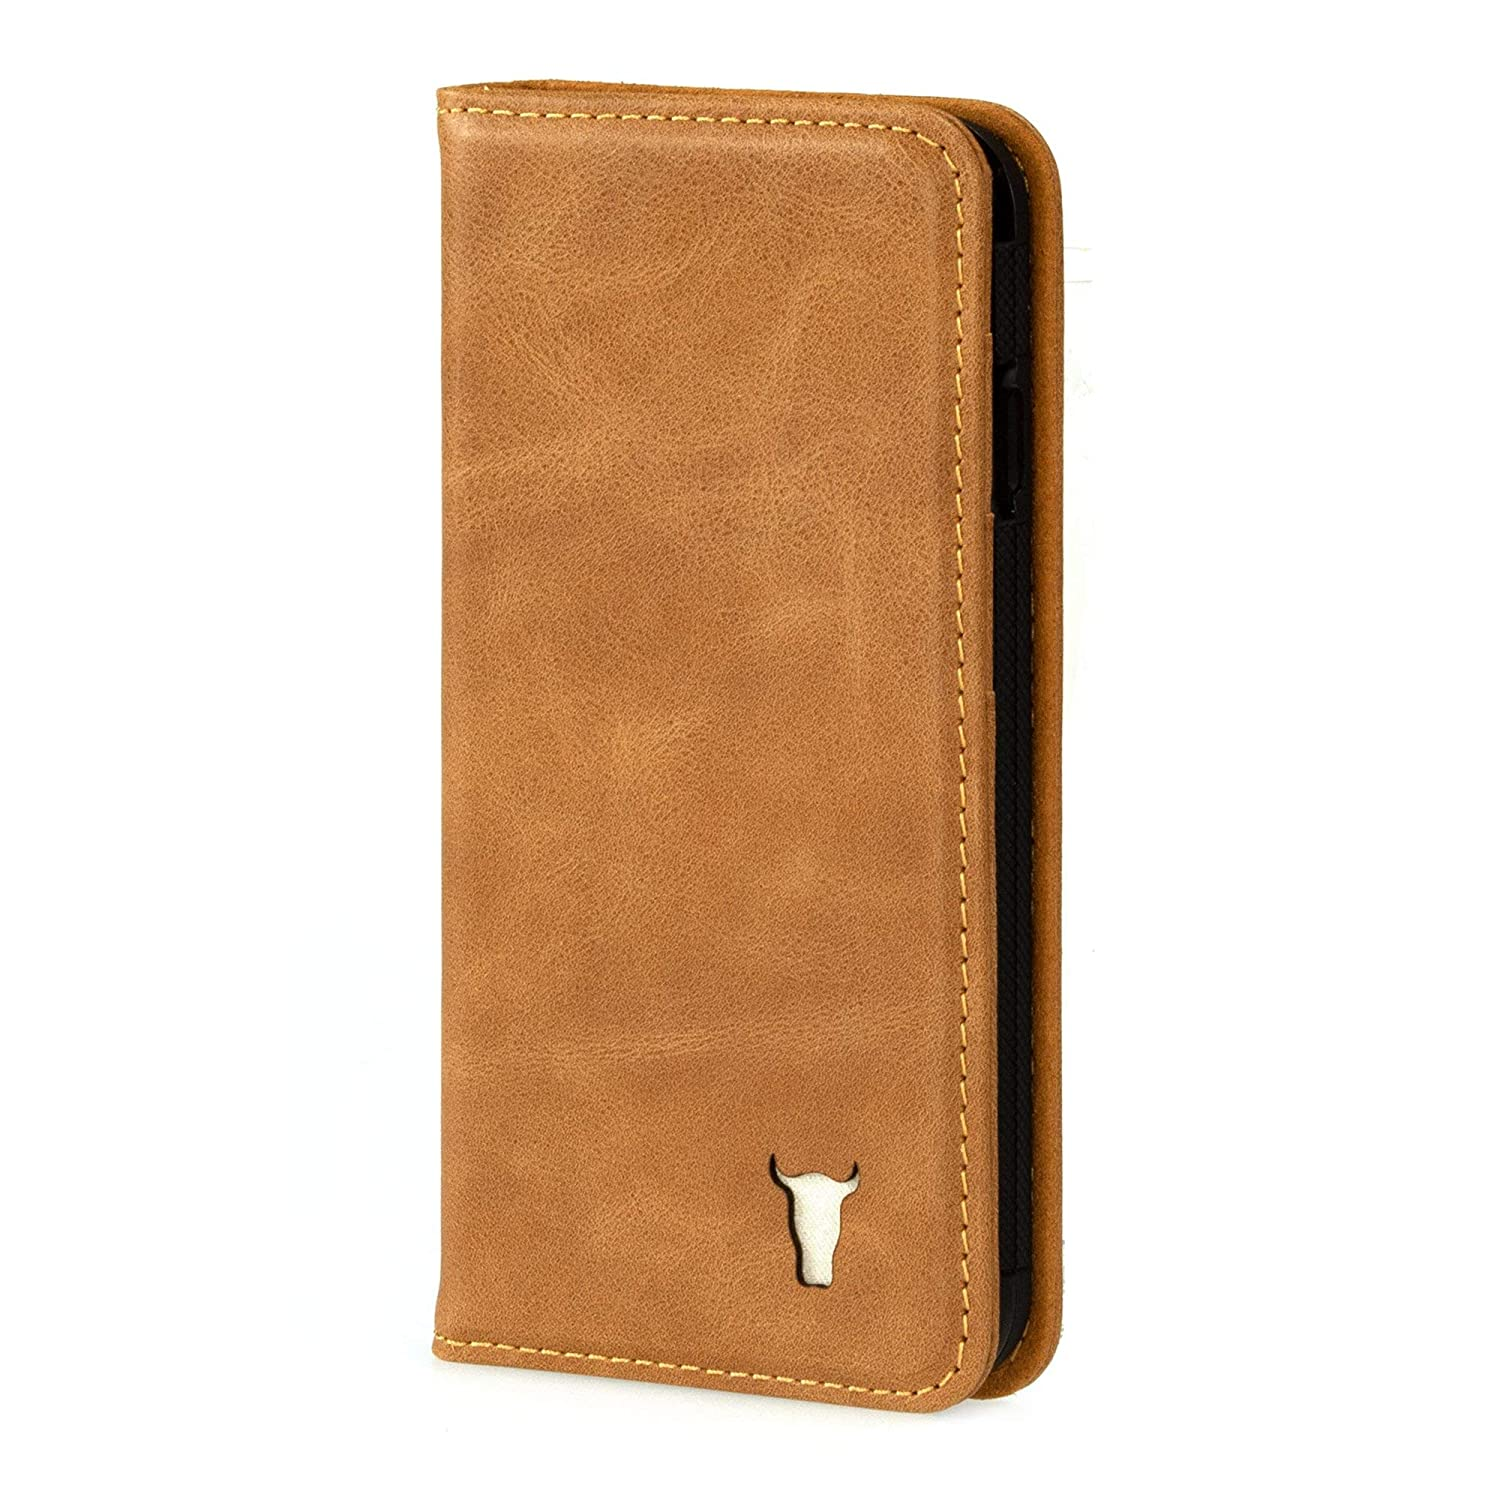 finest selection 8804a a1710 TORRO iPhone 6 / 6S USA Tan Leather Case With Stand Function